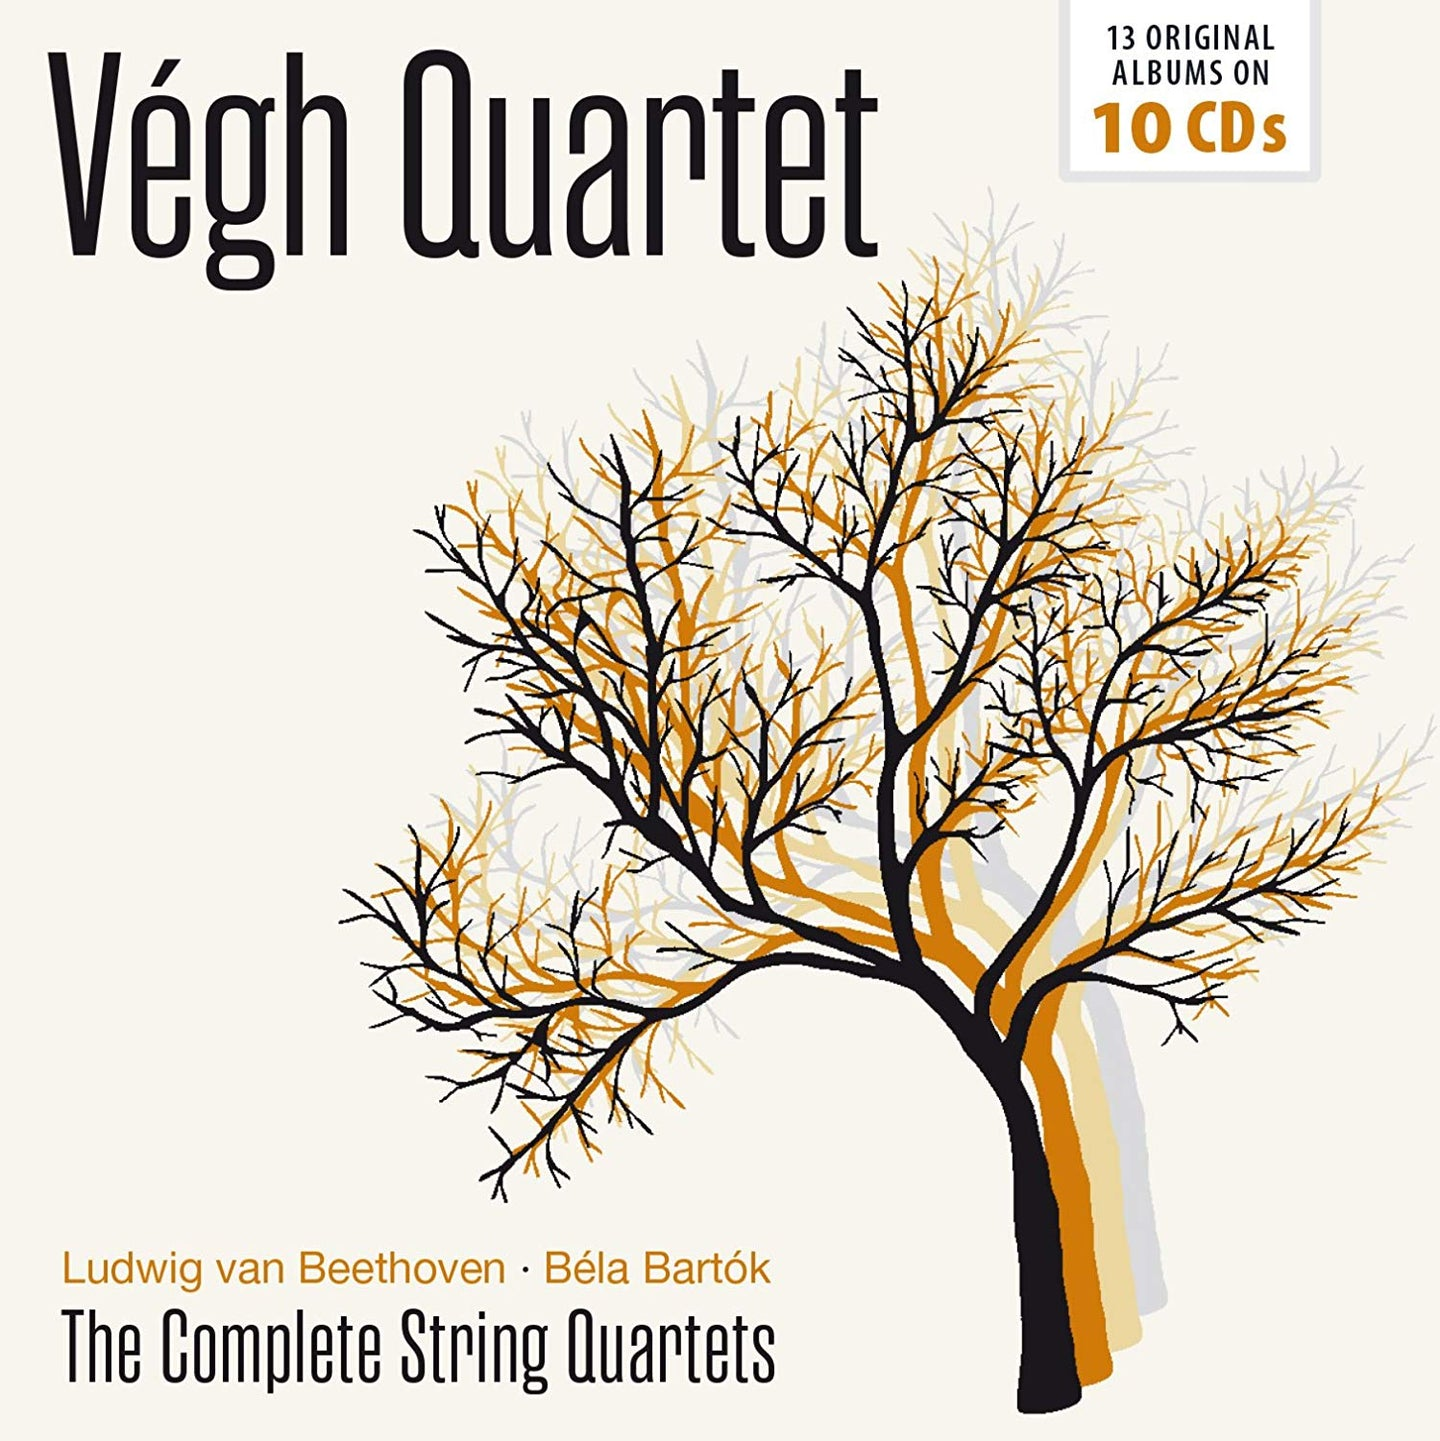 BEETHOVEN & BARTOK: THE COMPLETE STRING QUARTETS - VEGH QUARTET (10 CDS)